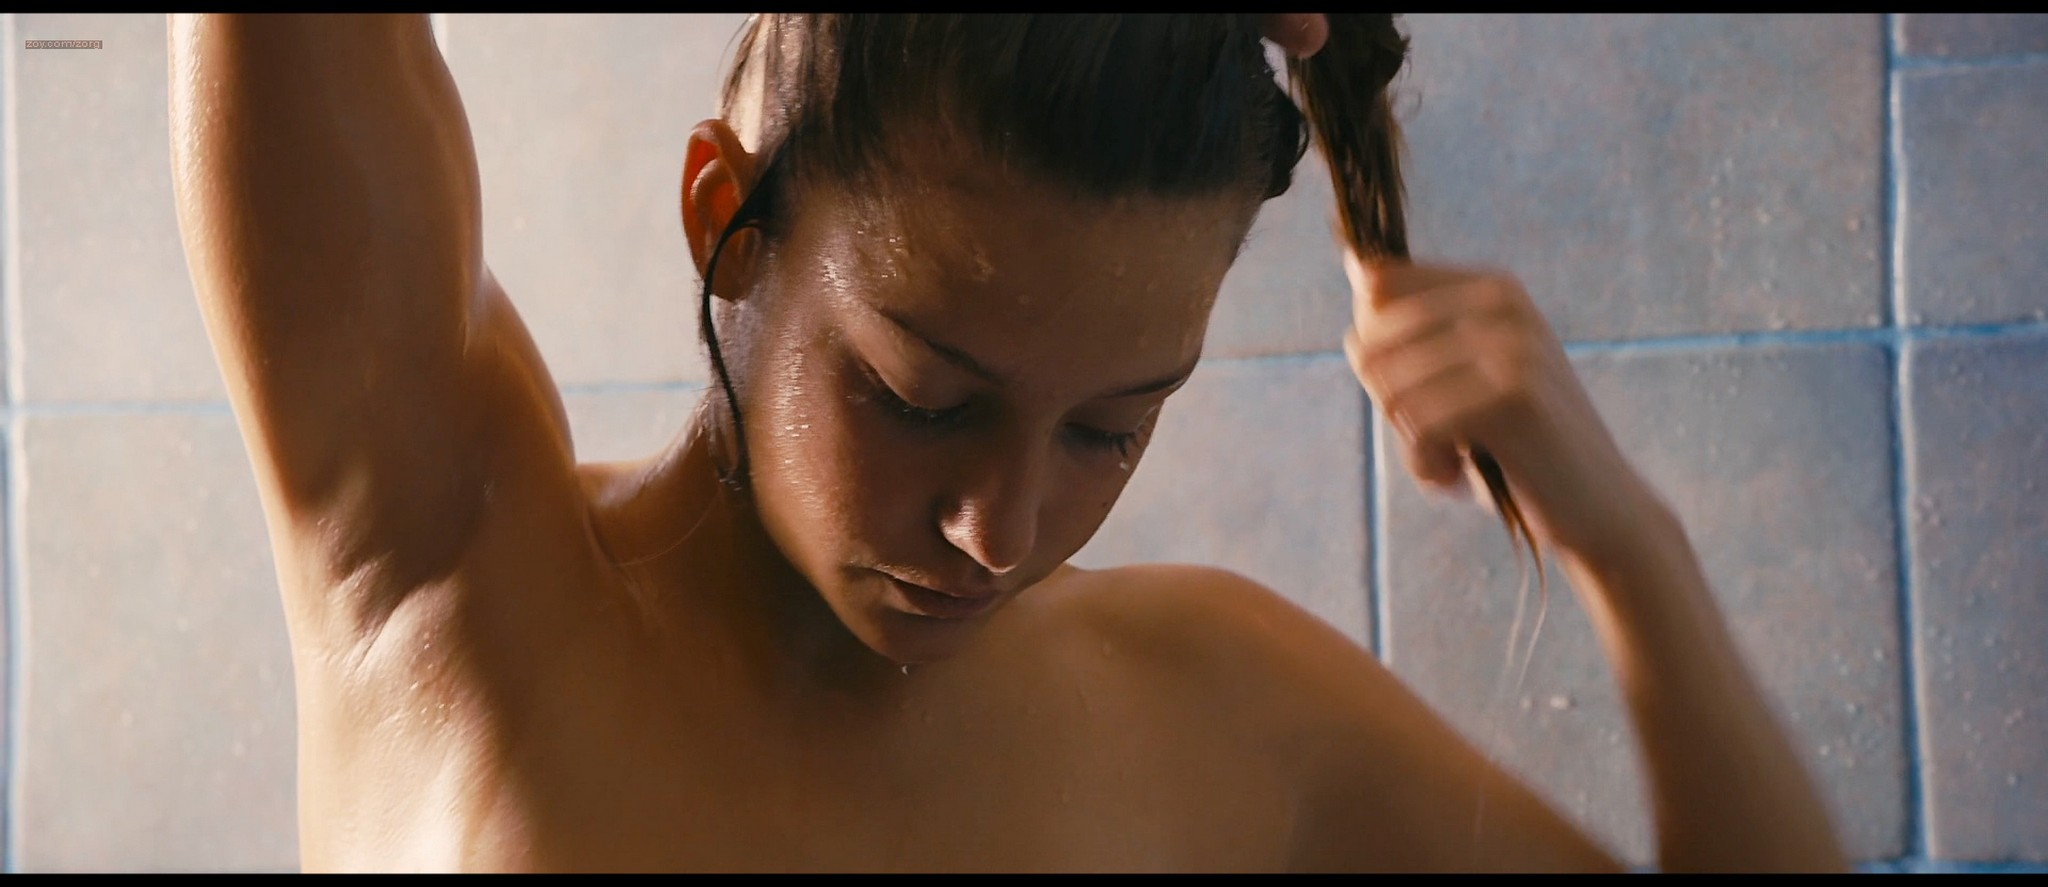 Lea Seydoux and Adele Exarchopoulos in explicit lesbian sex all nude - Blue Is the Warmest Color (2013) HD 1080p BluRay (1)